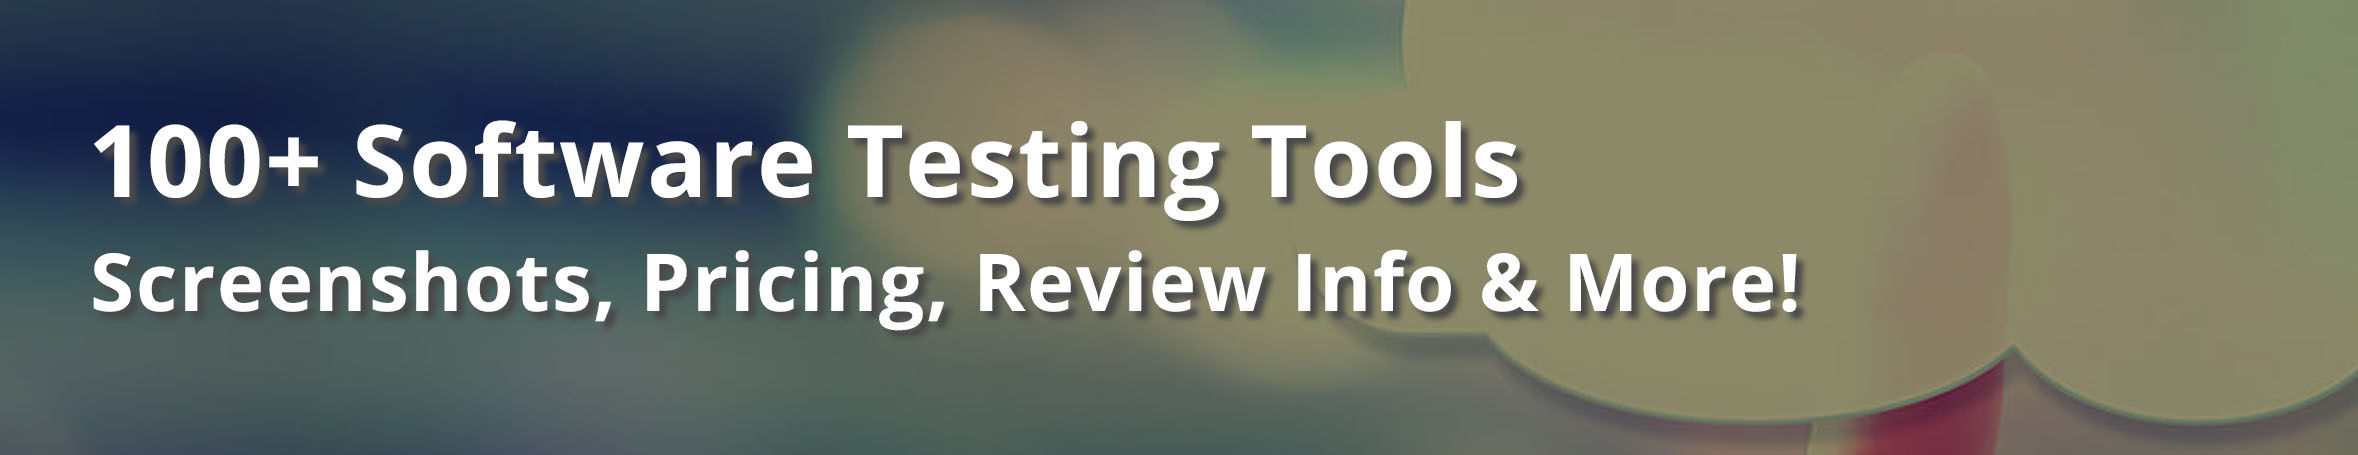 100+ Software Testing Tools Review